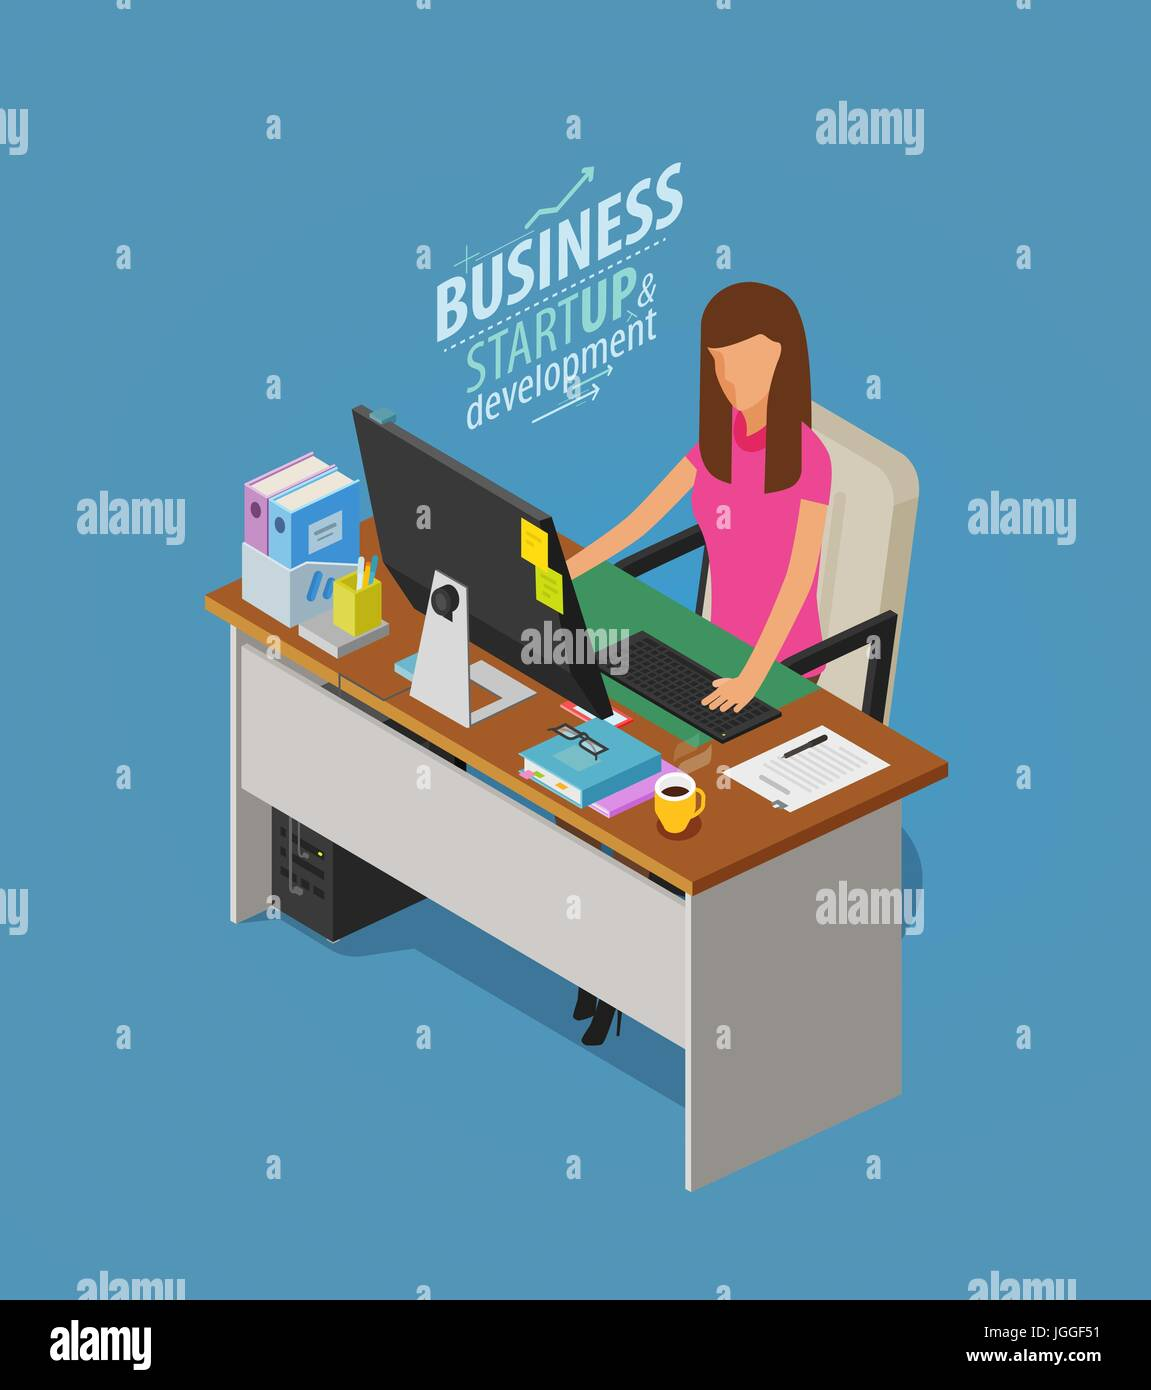 Business concept. Girl, woman sitting at desk with computer. Office worker, work, workplace icon. Flat vector illustration - Stock Vector